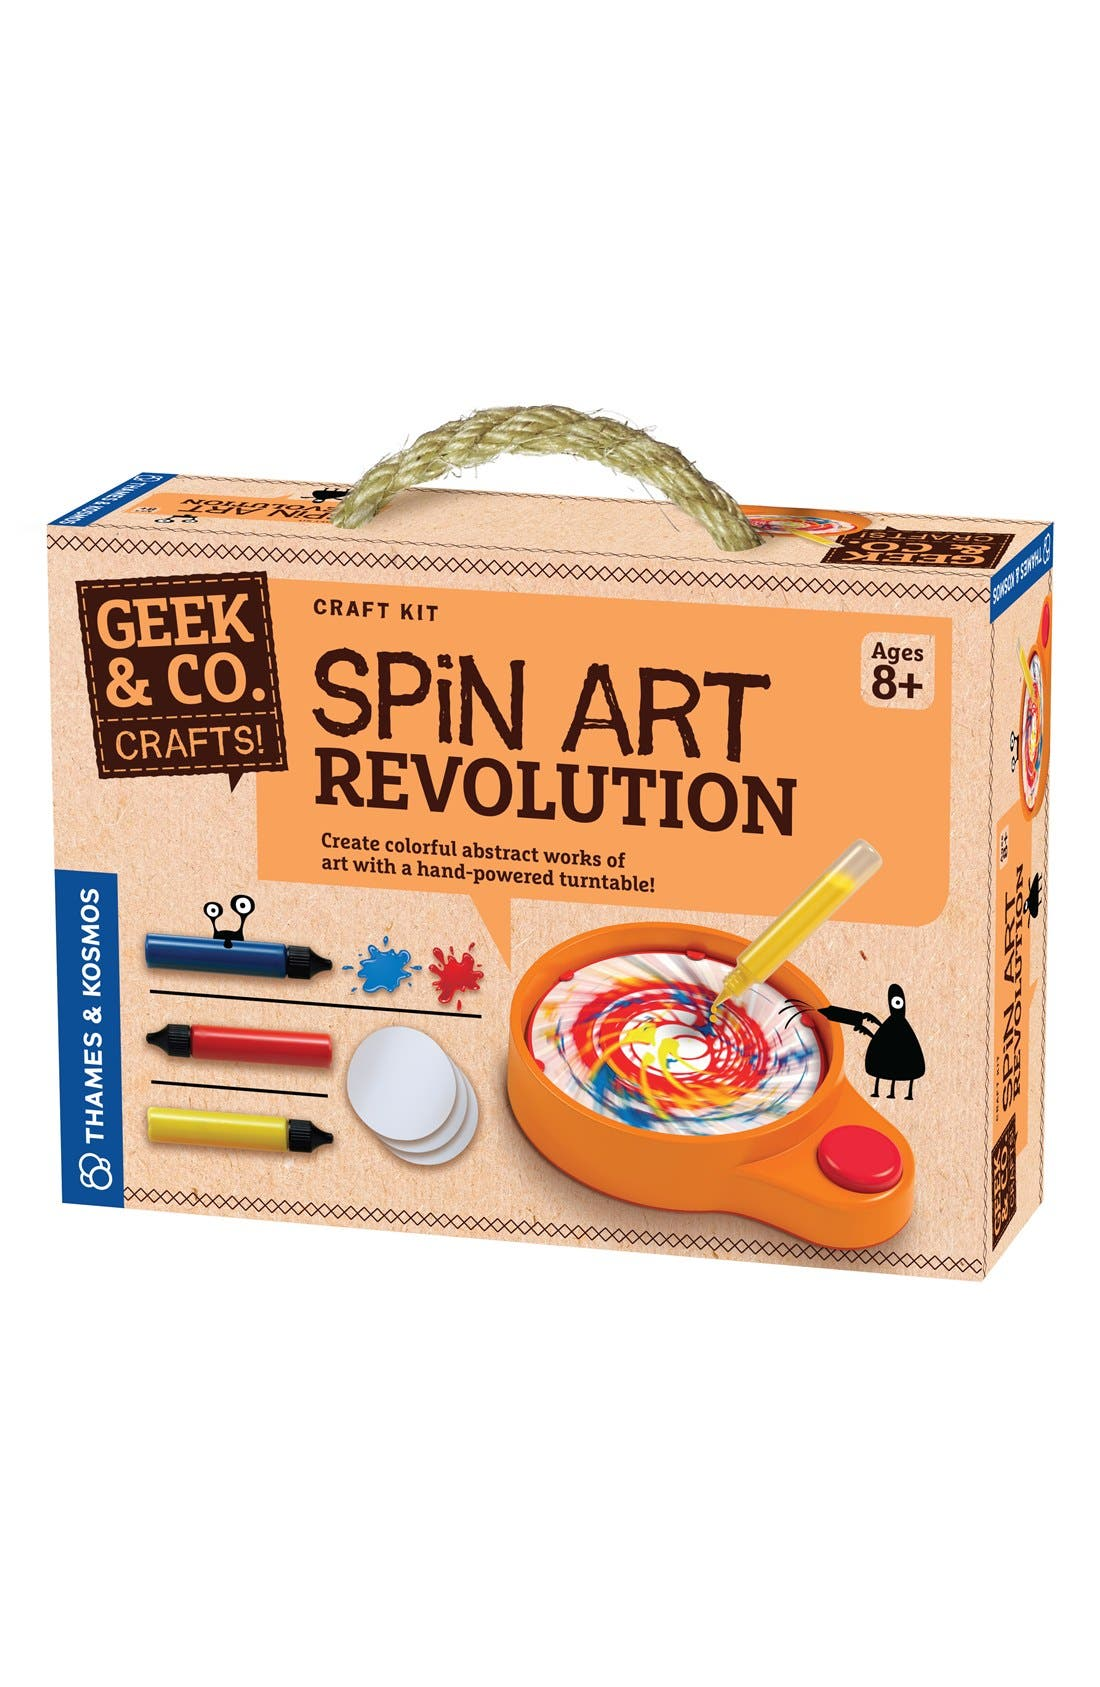 Thames & Kosmos 'Spin Art Revolution' Craft Kit